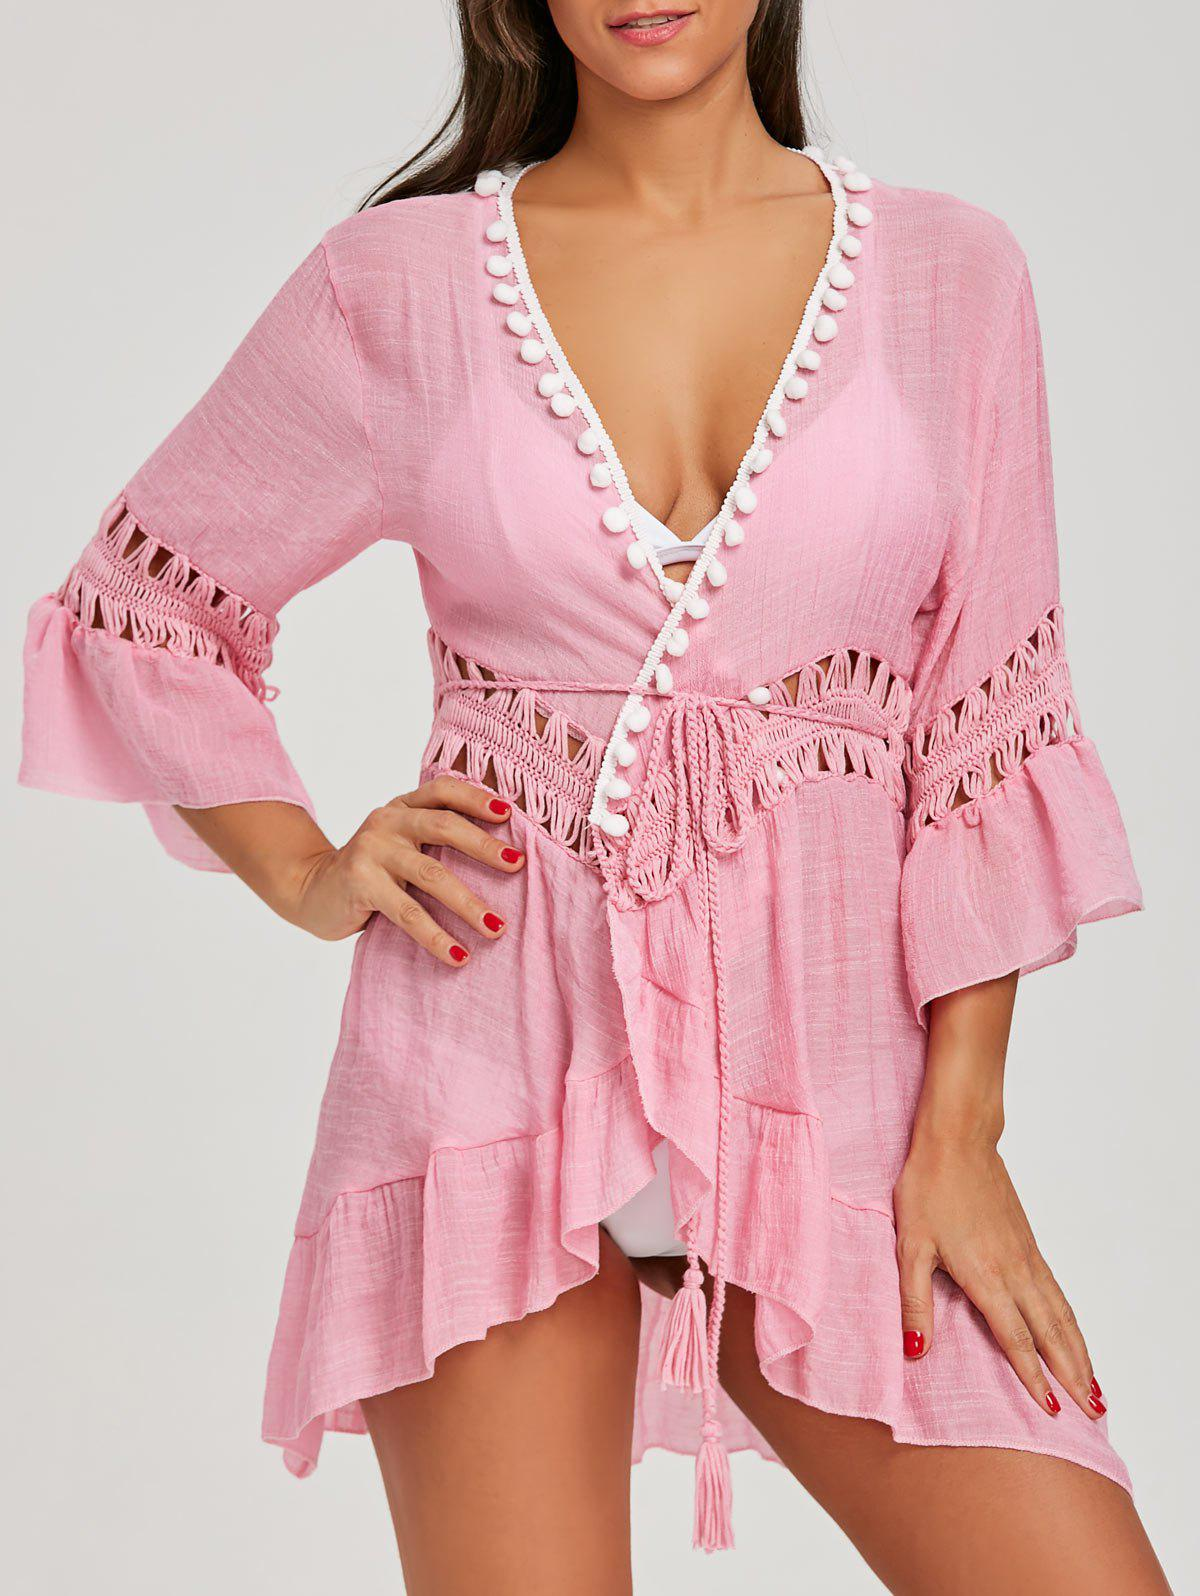 Robe de Plage à Volants avec Bordures à Pompons - Rose ONE SIZE